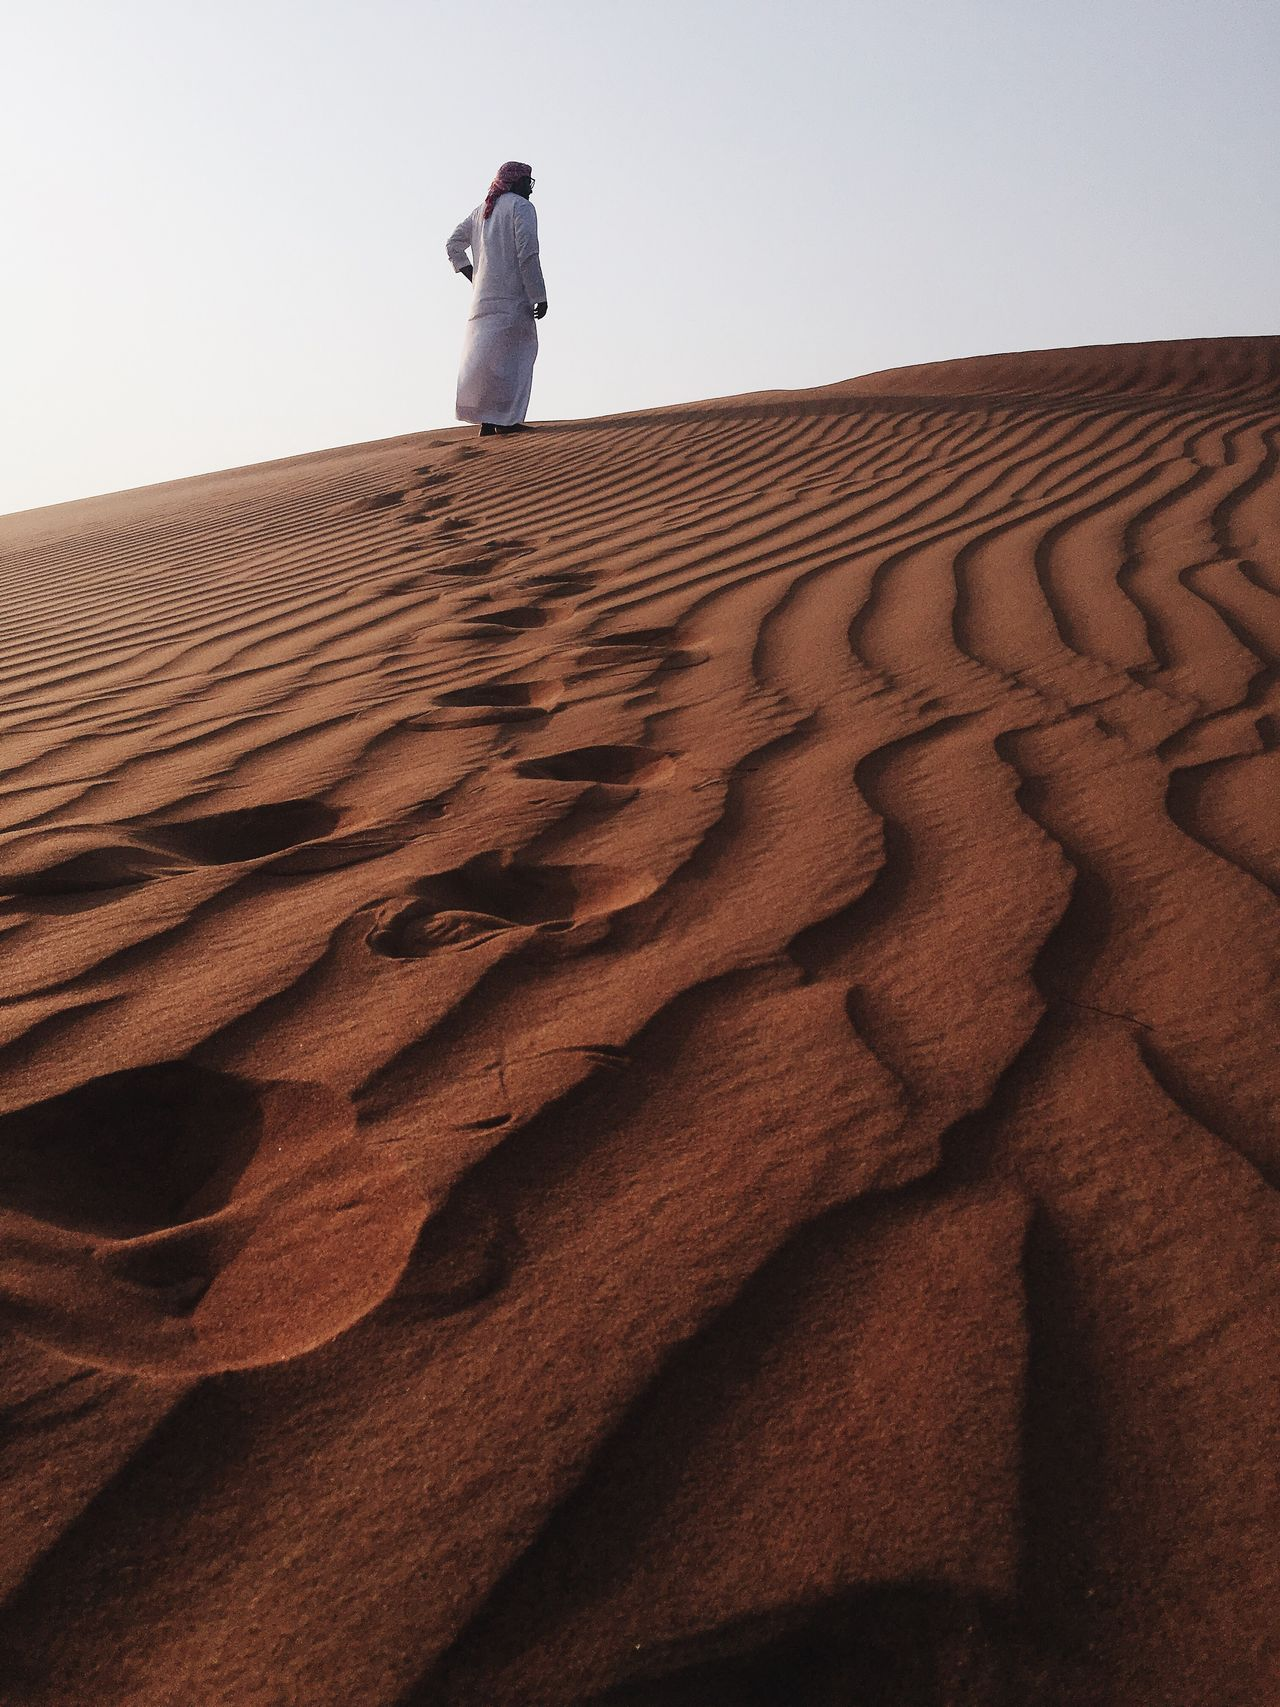 People And Places Sand Dune Sand Wave Pattern IPhone IPhoneography Iphoneonly Scenics Natural Pattern Tranquil Scene Beauty In Nature Desert